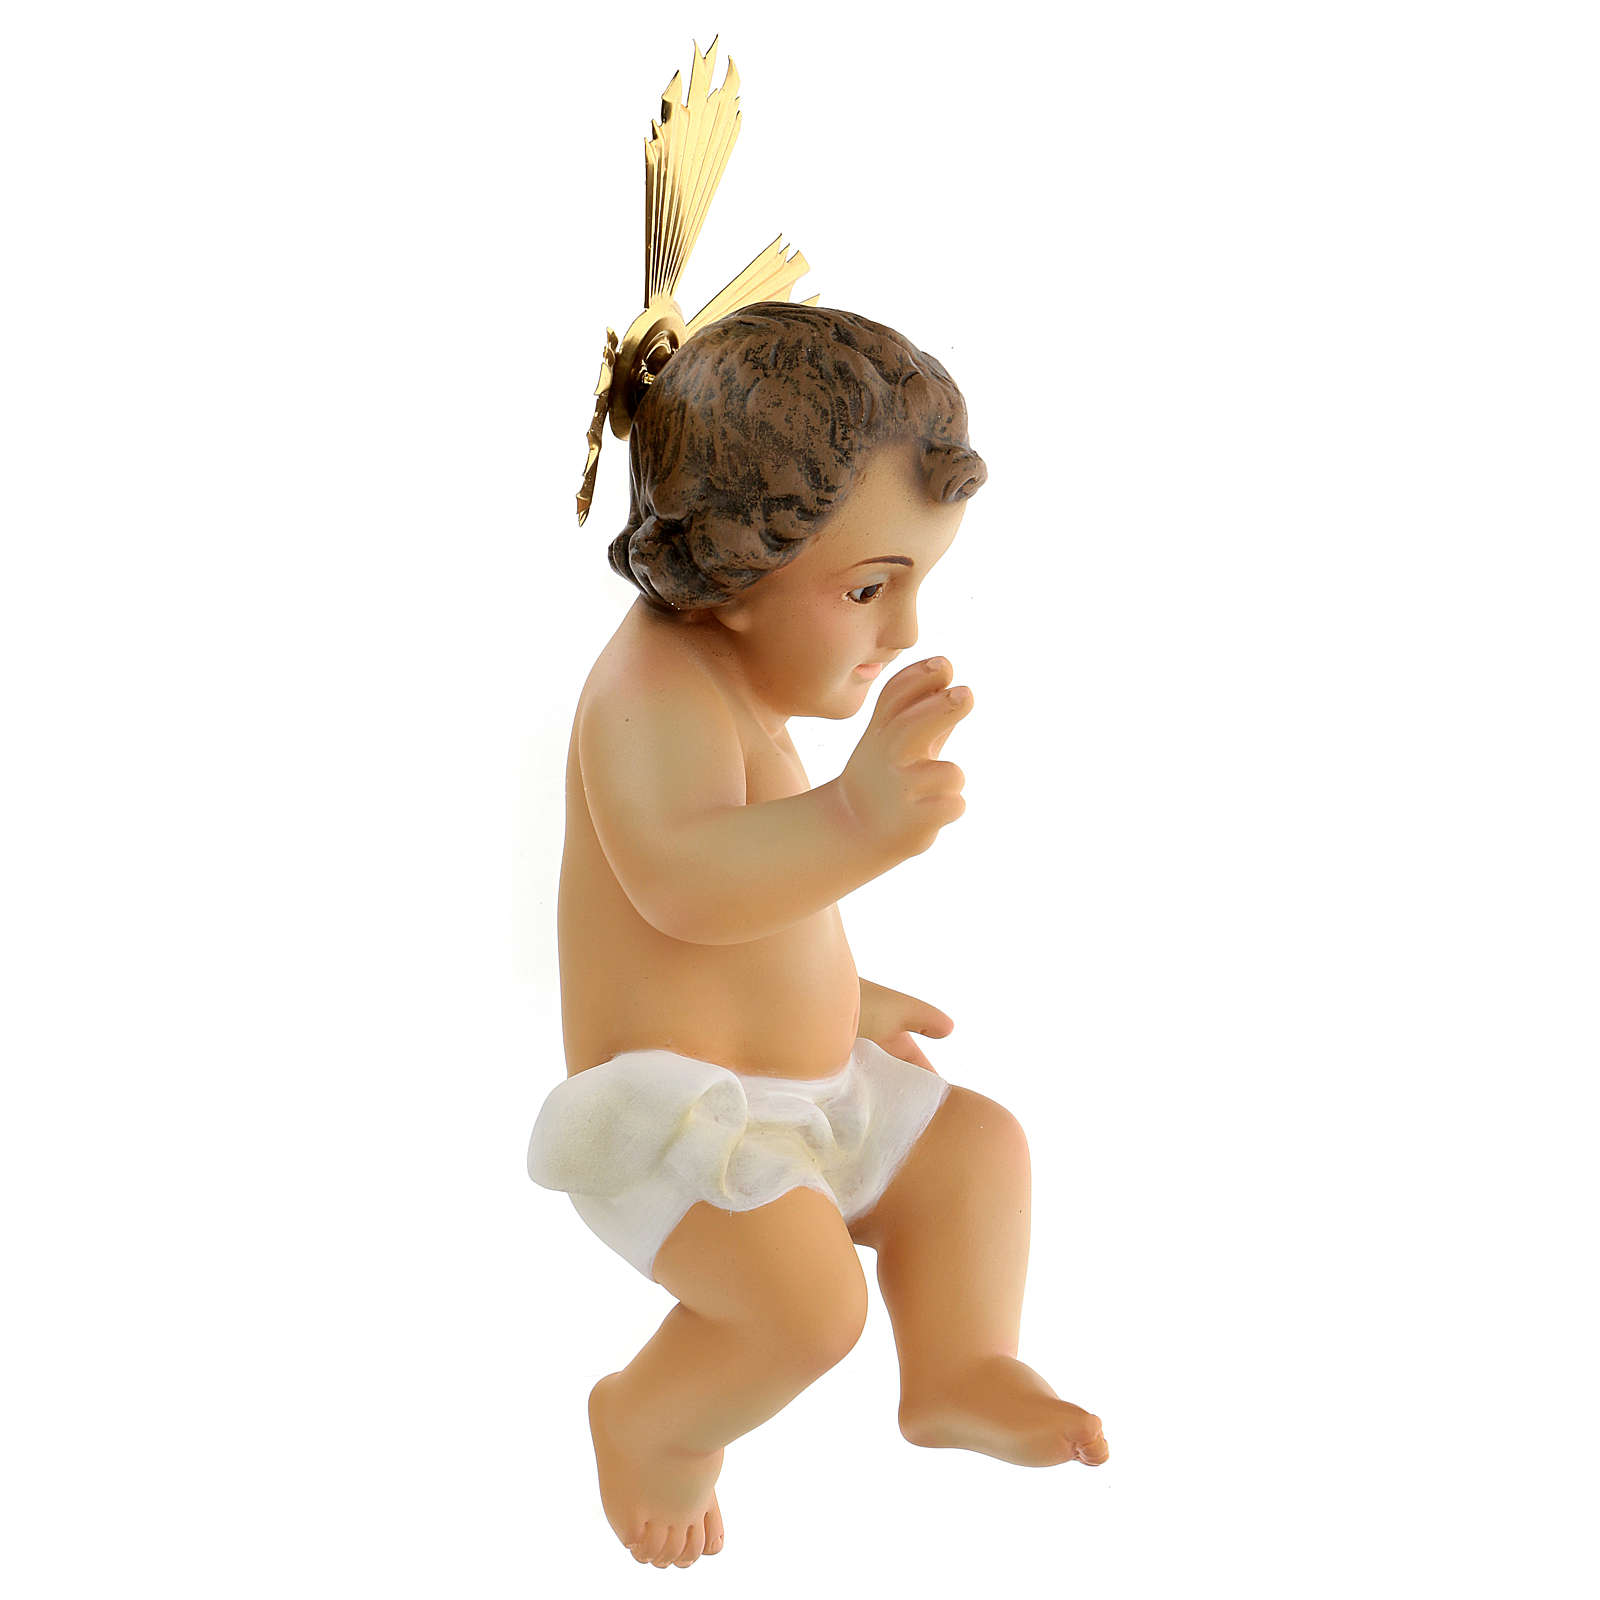 Baby Jesus figurine, in wood paste with ivory color dress 3